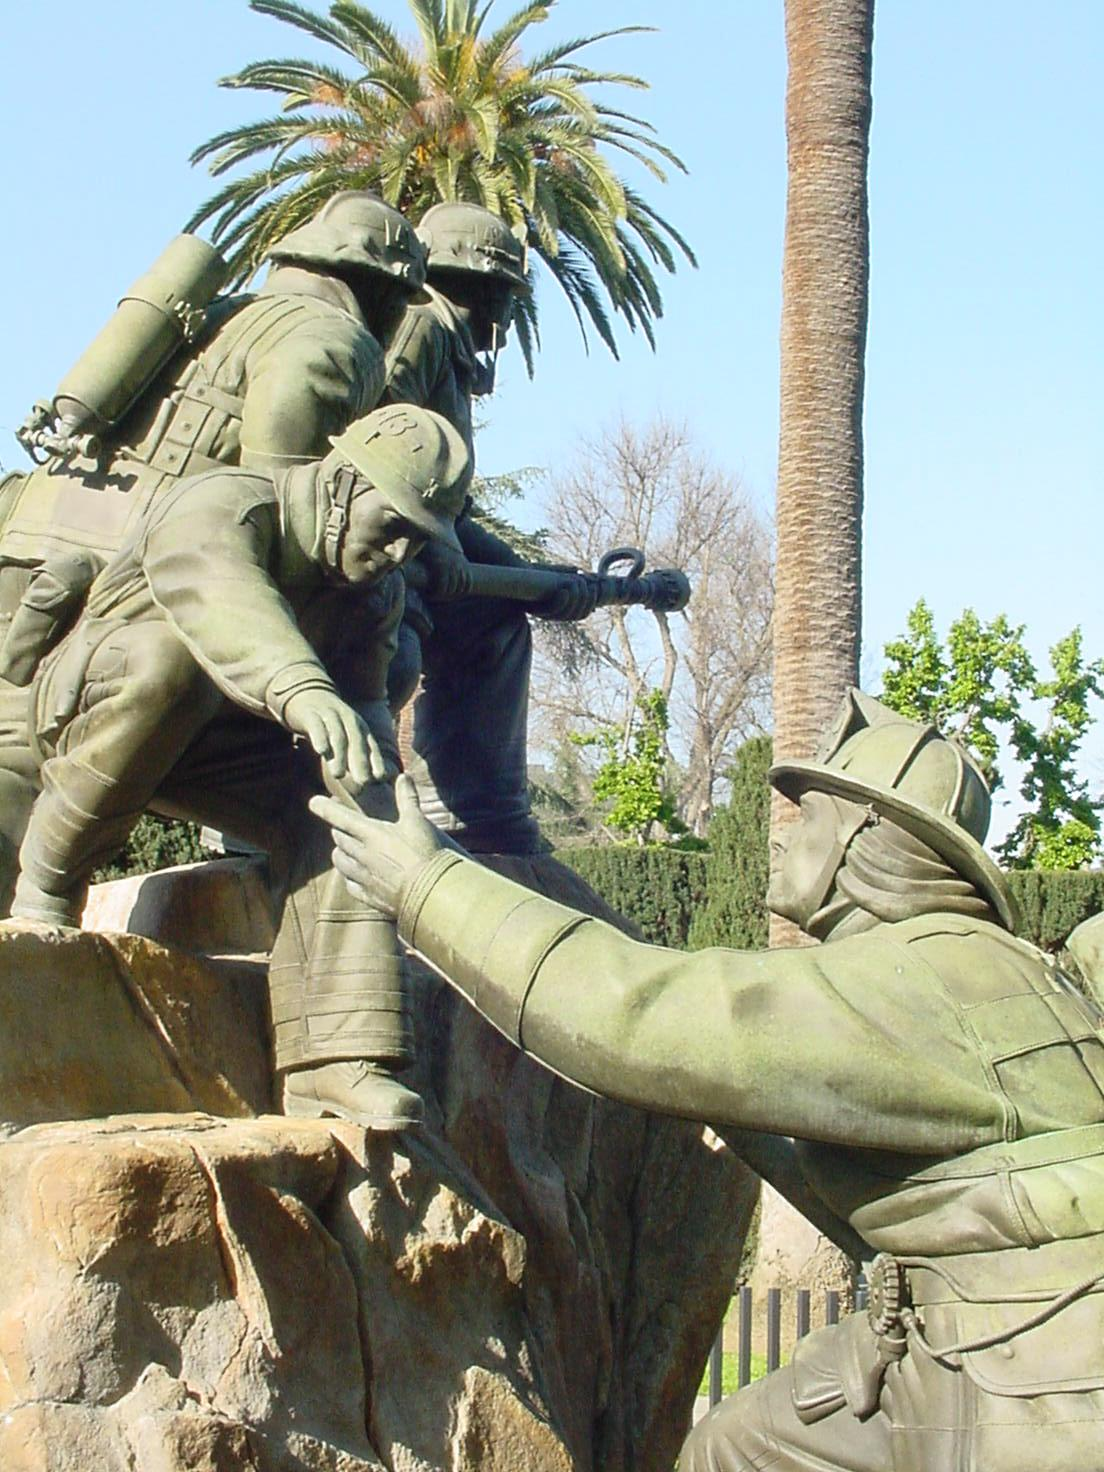 A close-up of the Firefighter Memorial